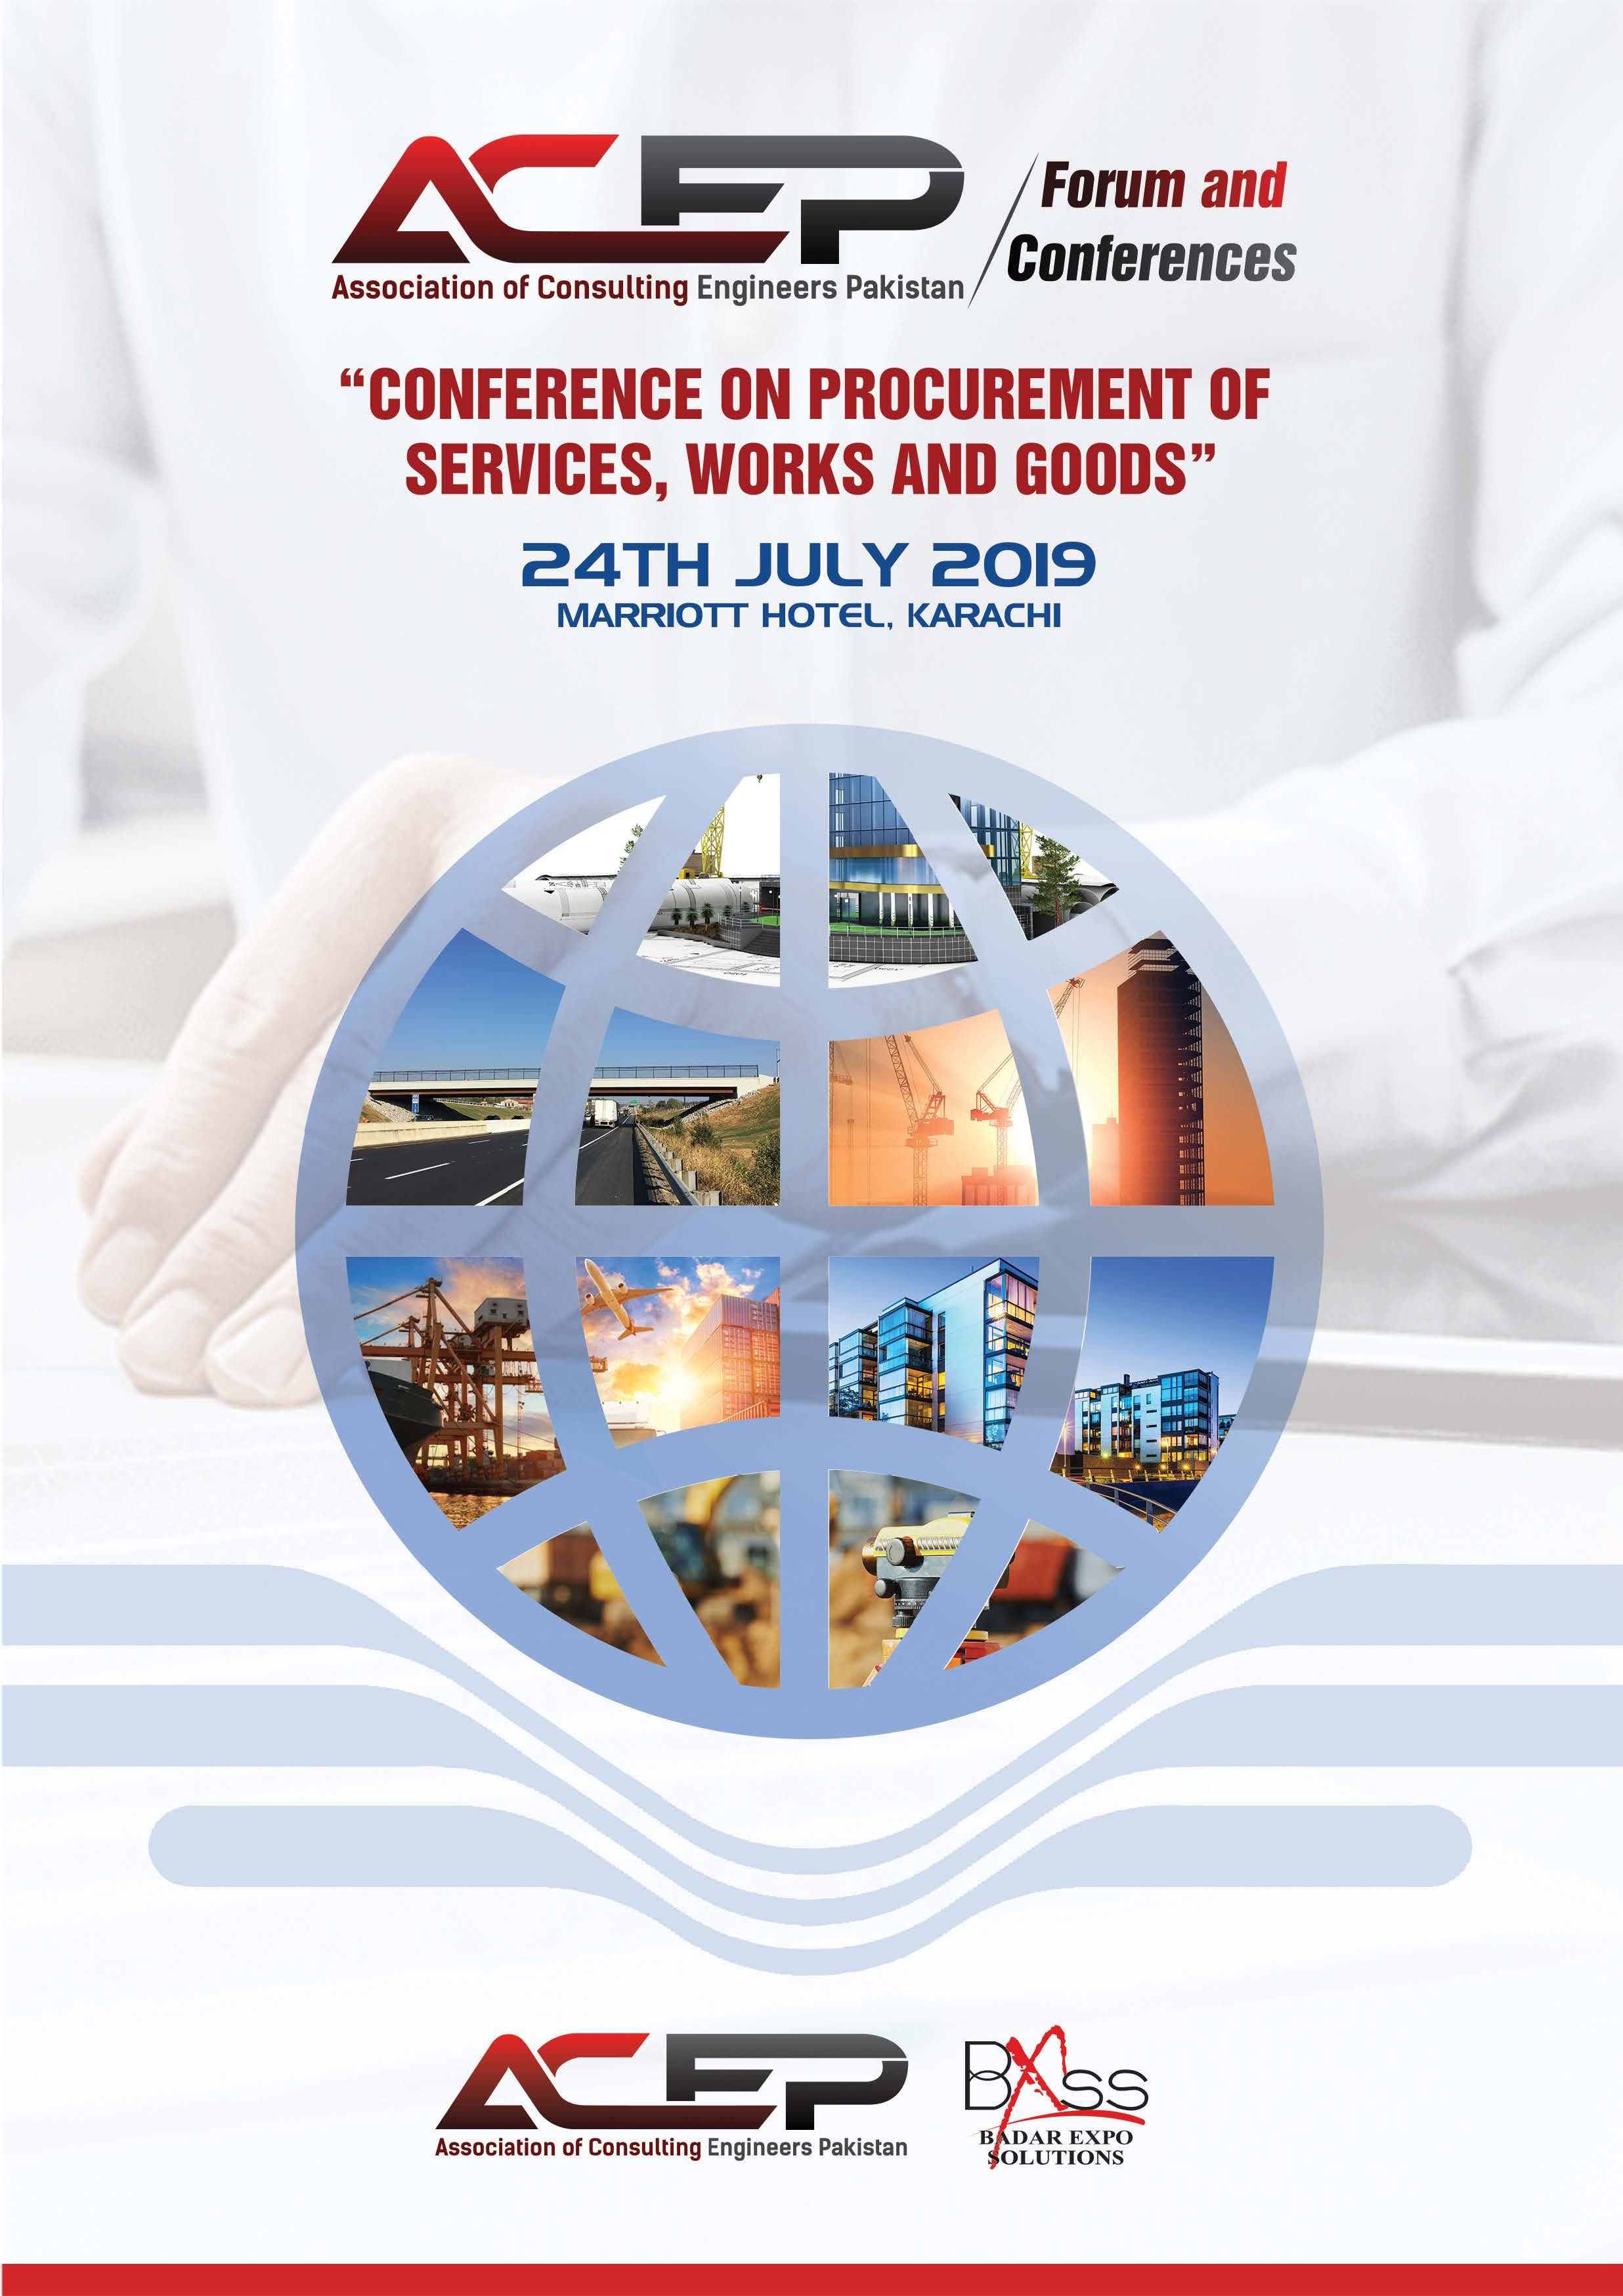 ACEP Conference-2019 brochure_Page_1_Image_0001.jpg